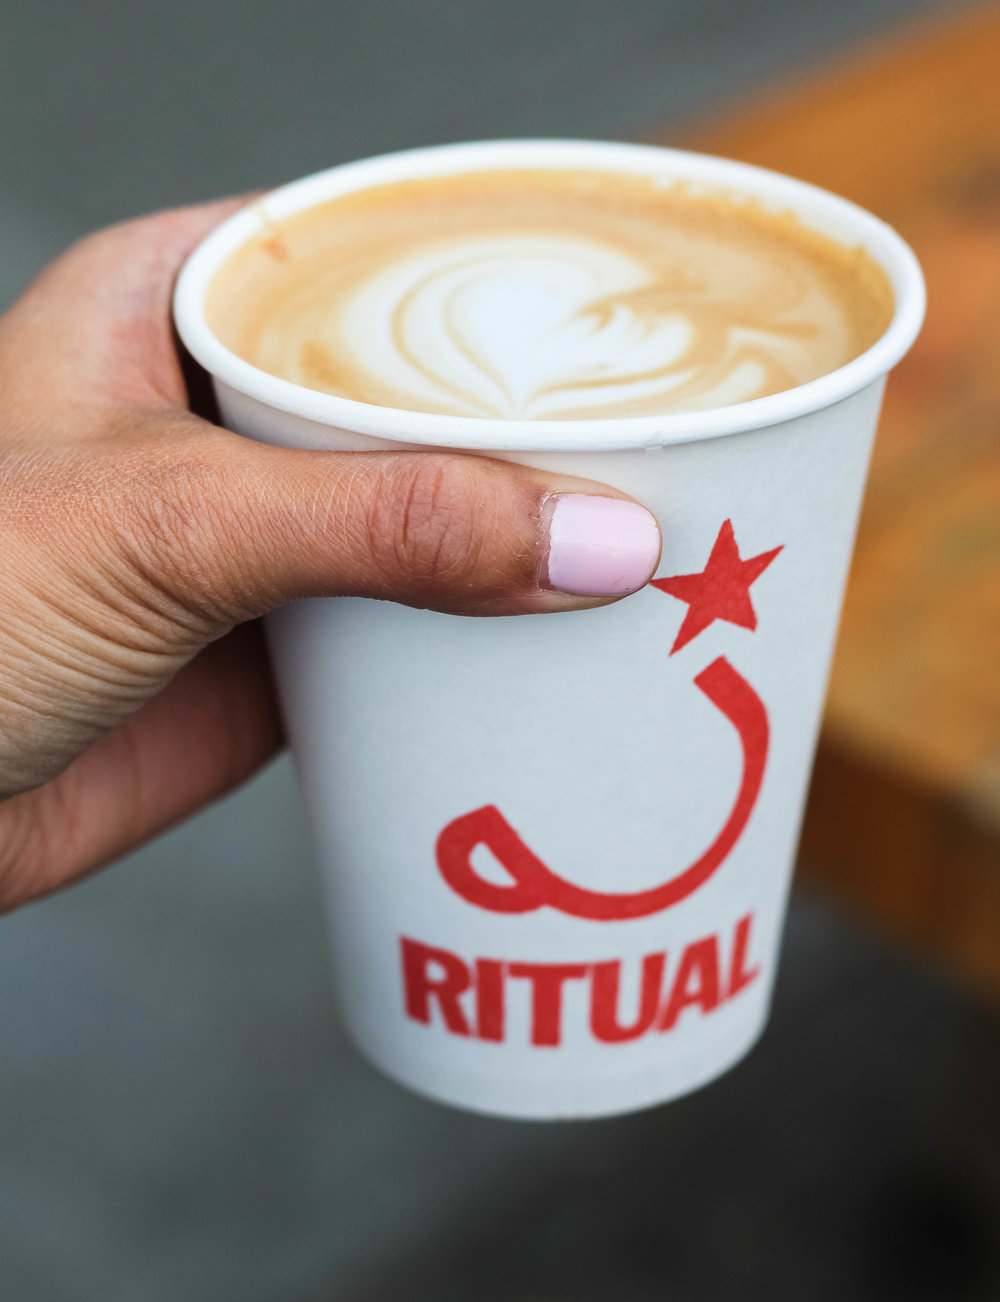 Best Coffee Shops in San Francisco: Ritual Coffee